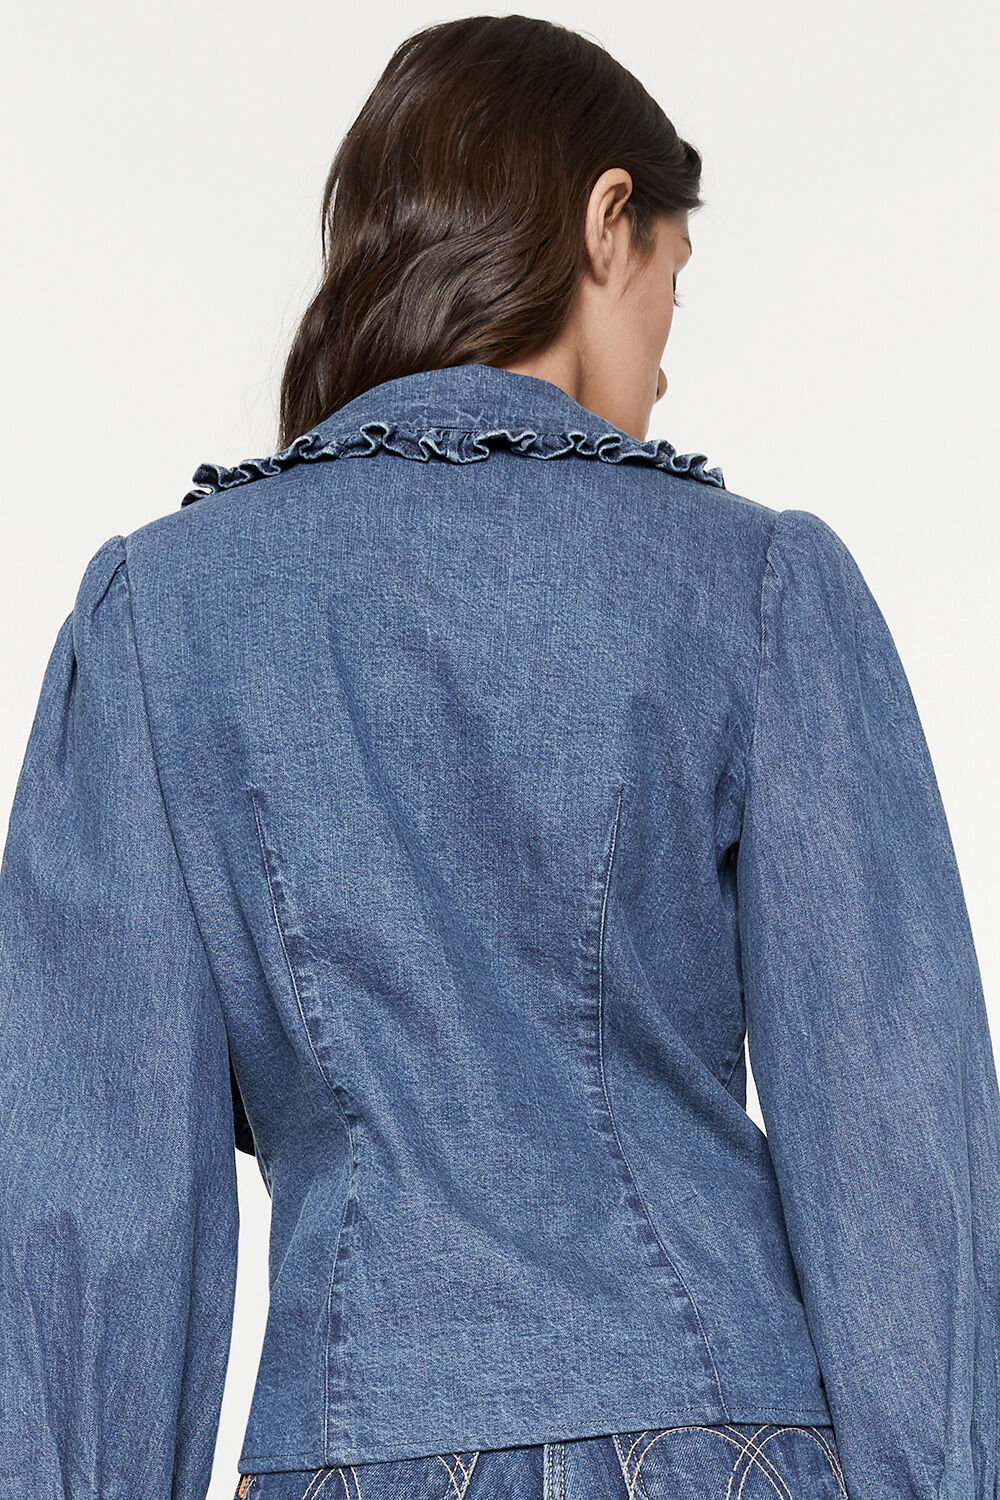 COLLAR DETAIL CHAMBRAY SHIRT in colour MIDNIGHT NAVY